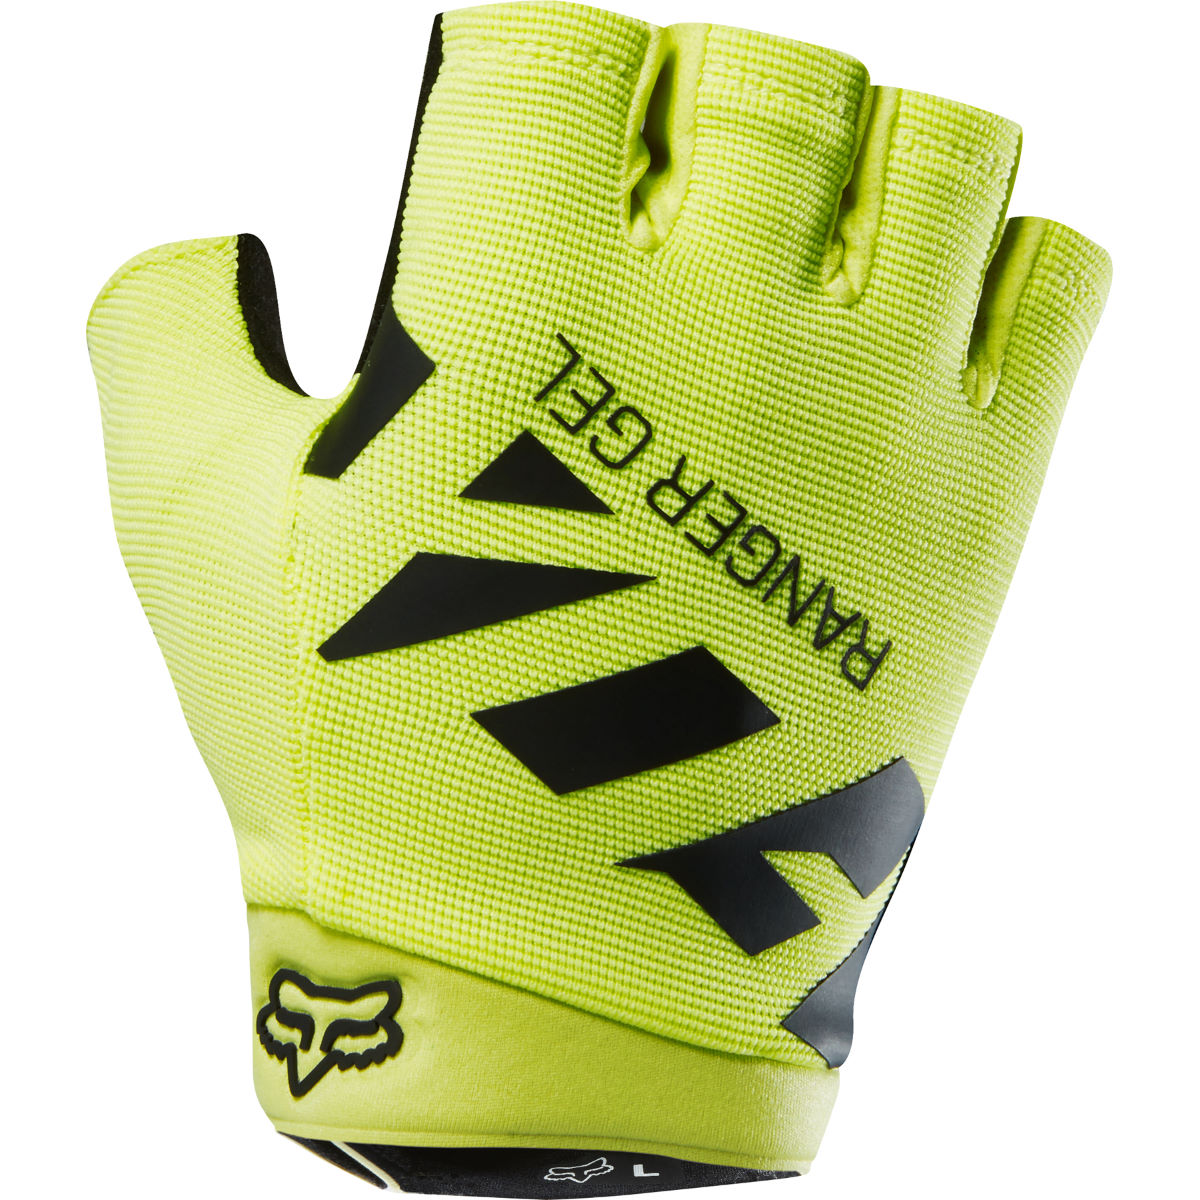 Fox Racing Ranger Gel Short Gloves - S Yellow/Black